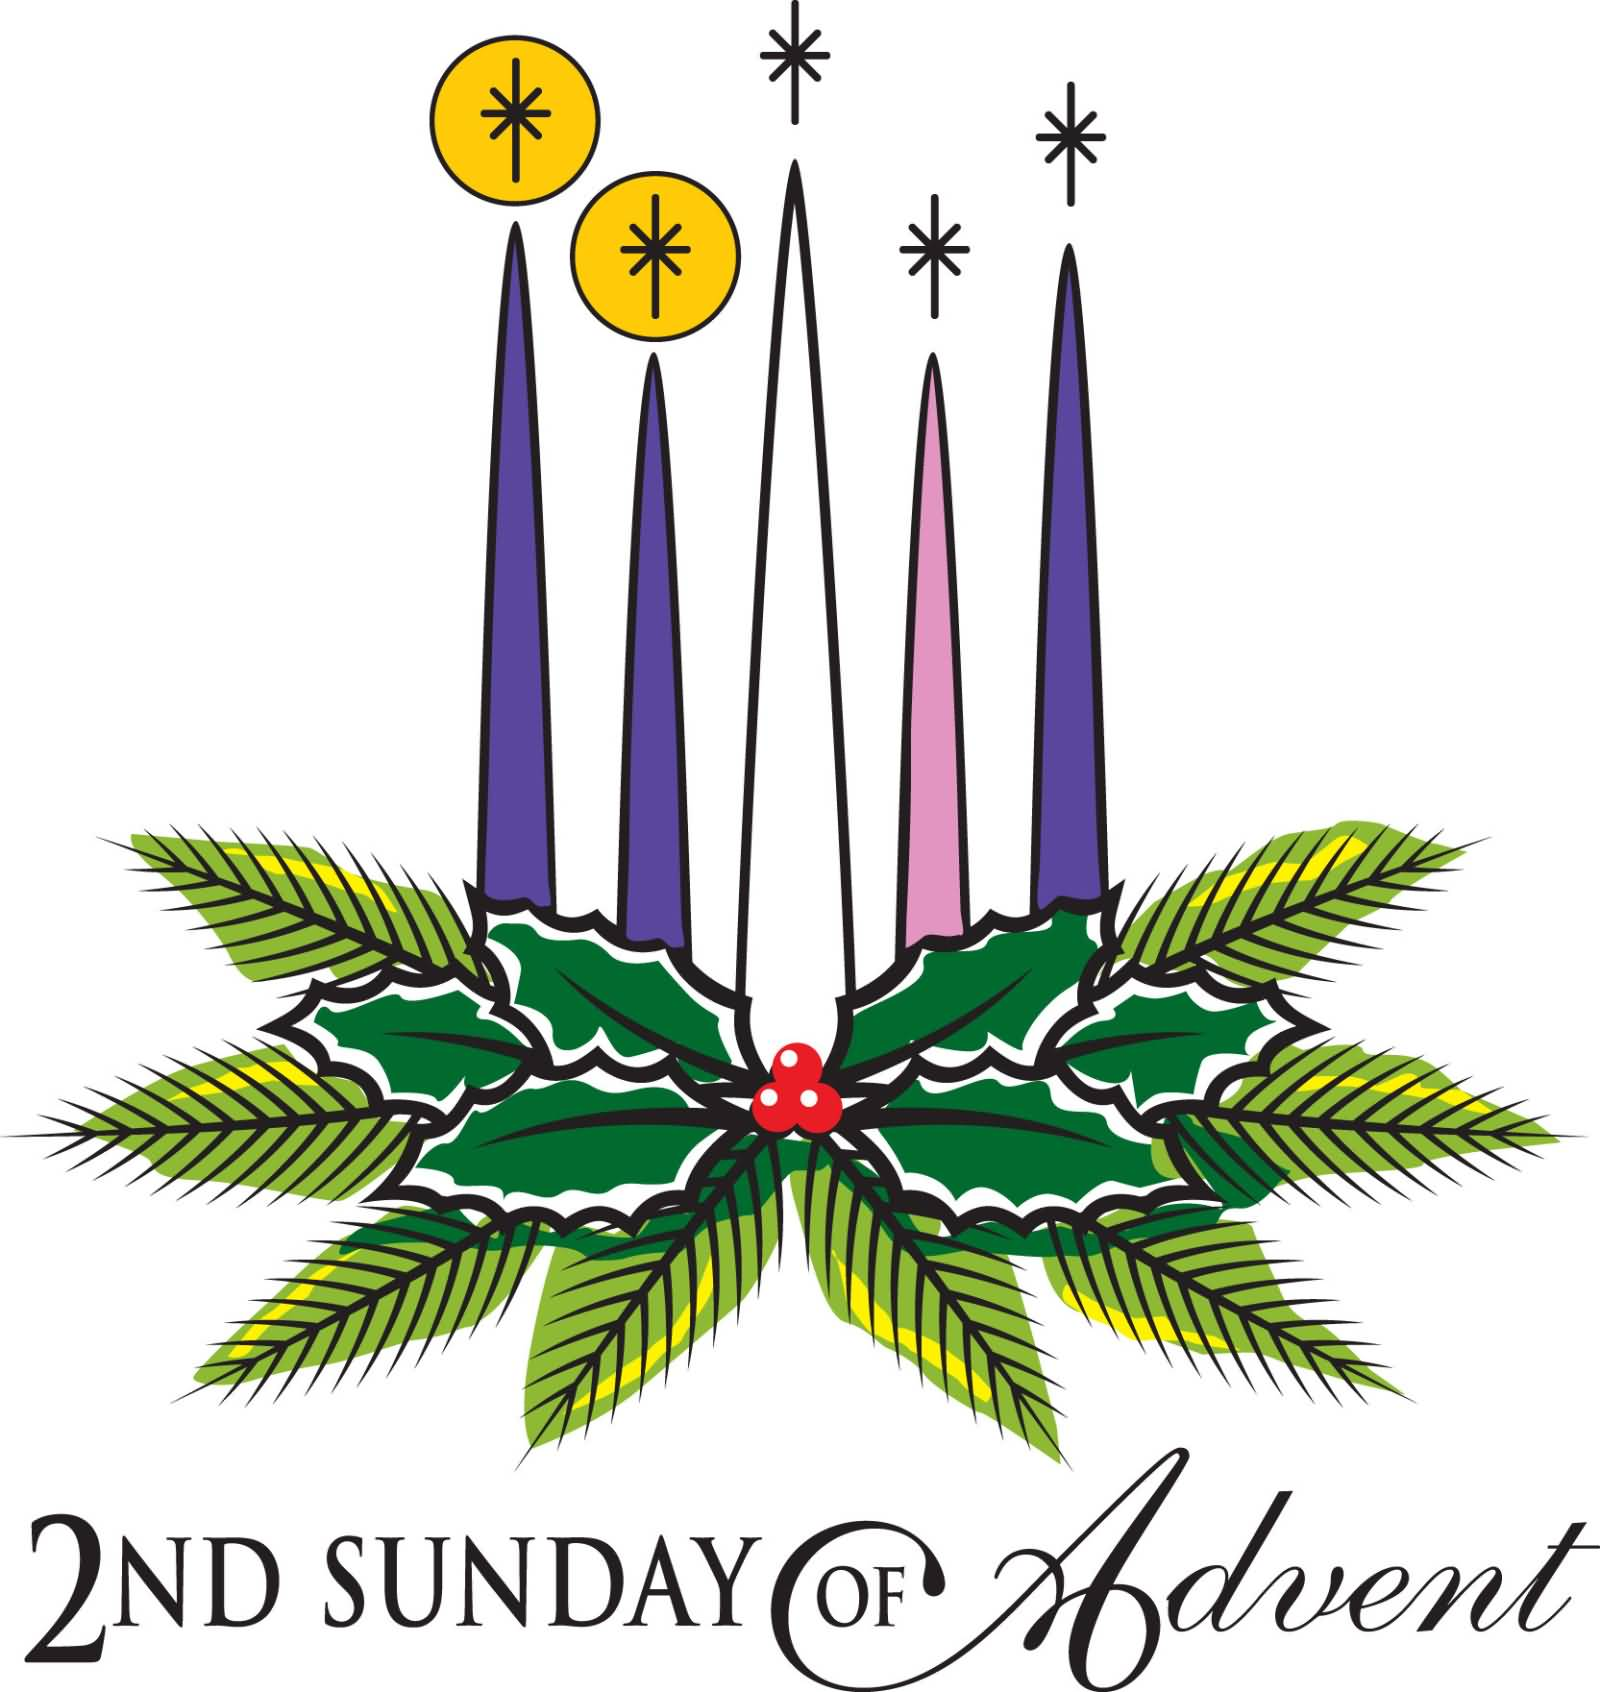 nd sunday of. Advent clipart advent candle